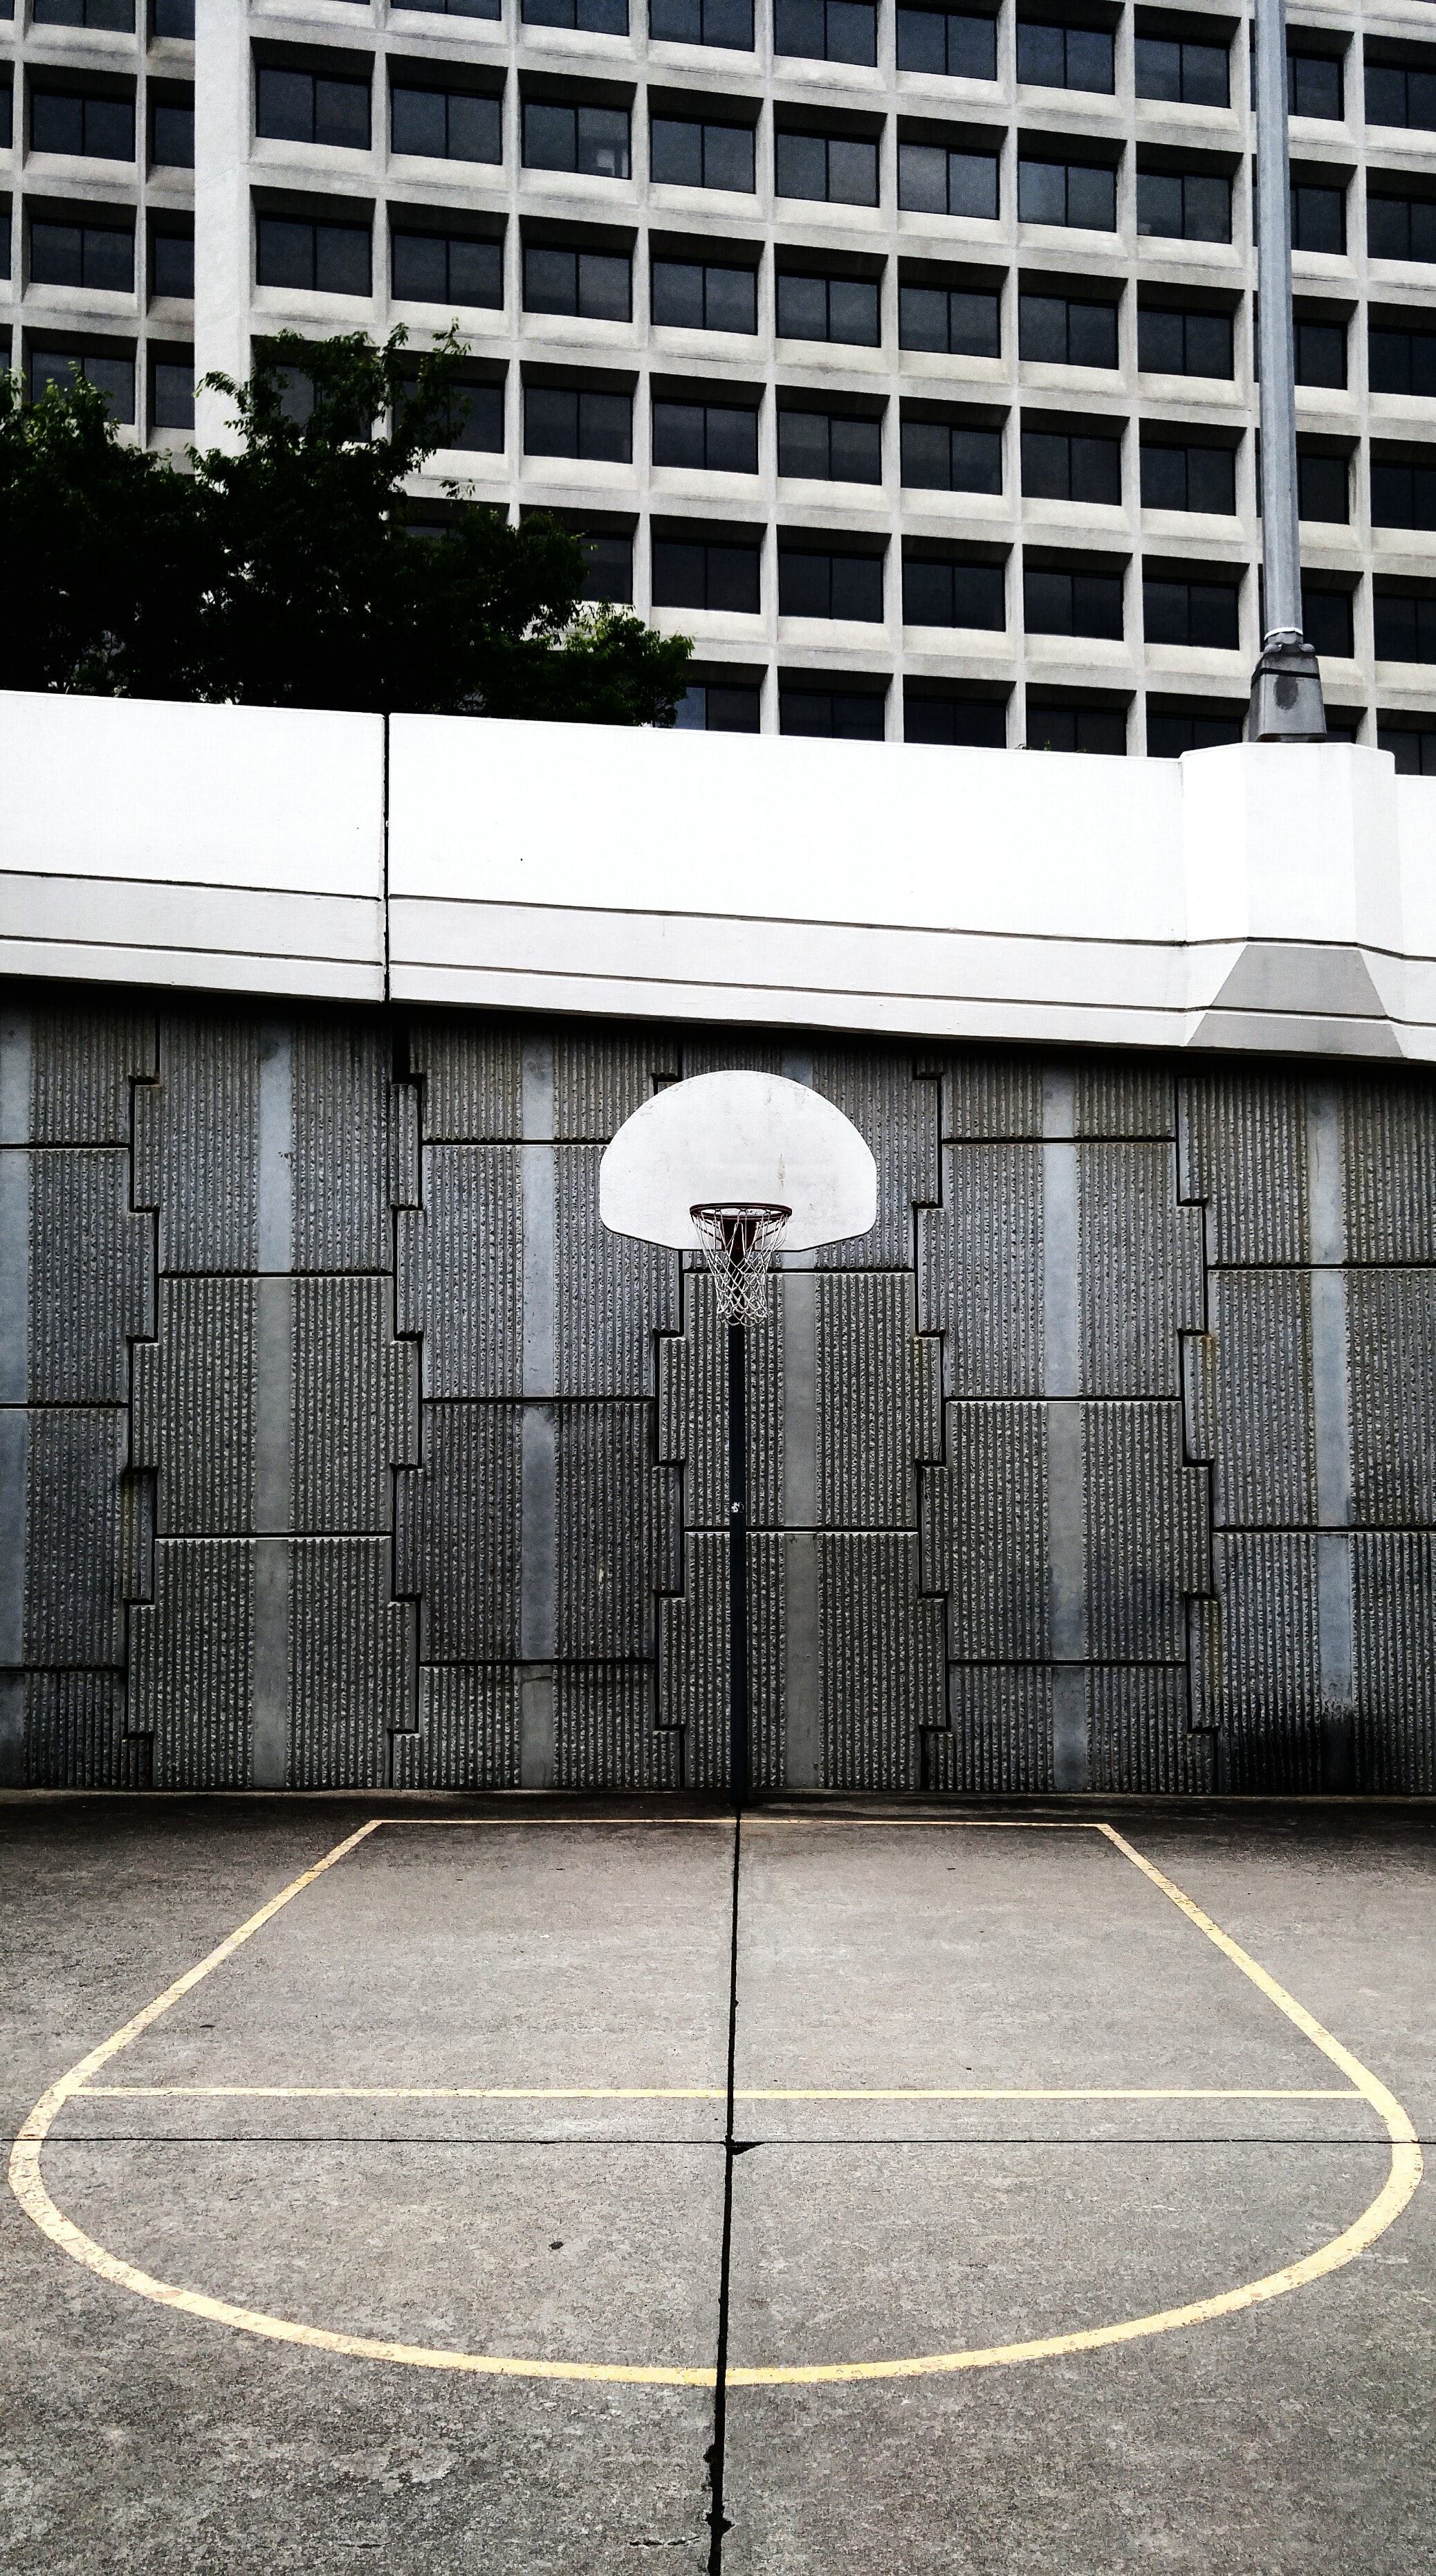 landscape photo of portable basketball hoop on court